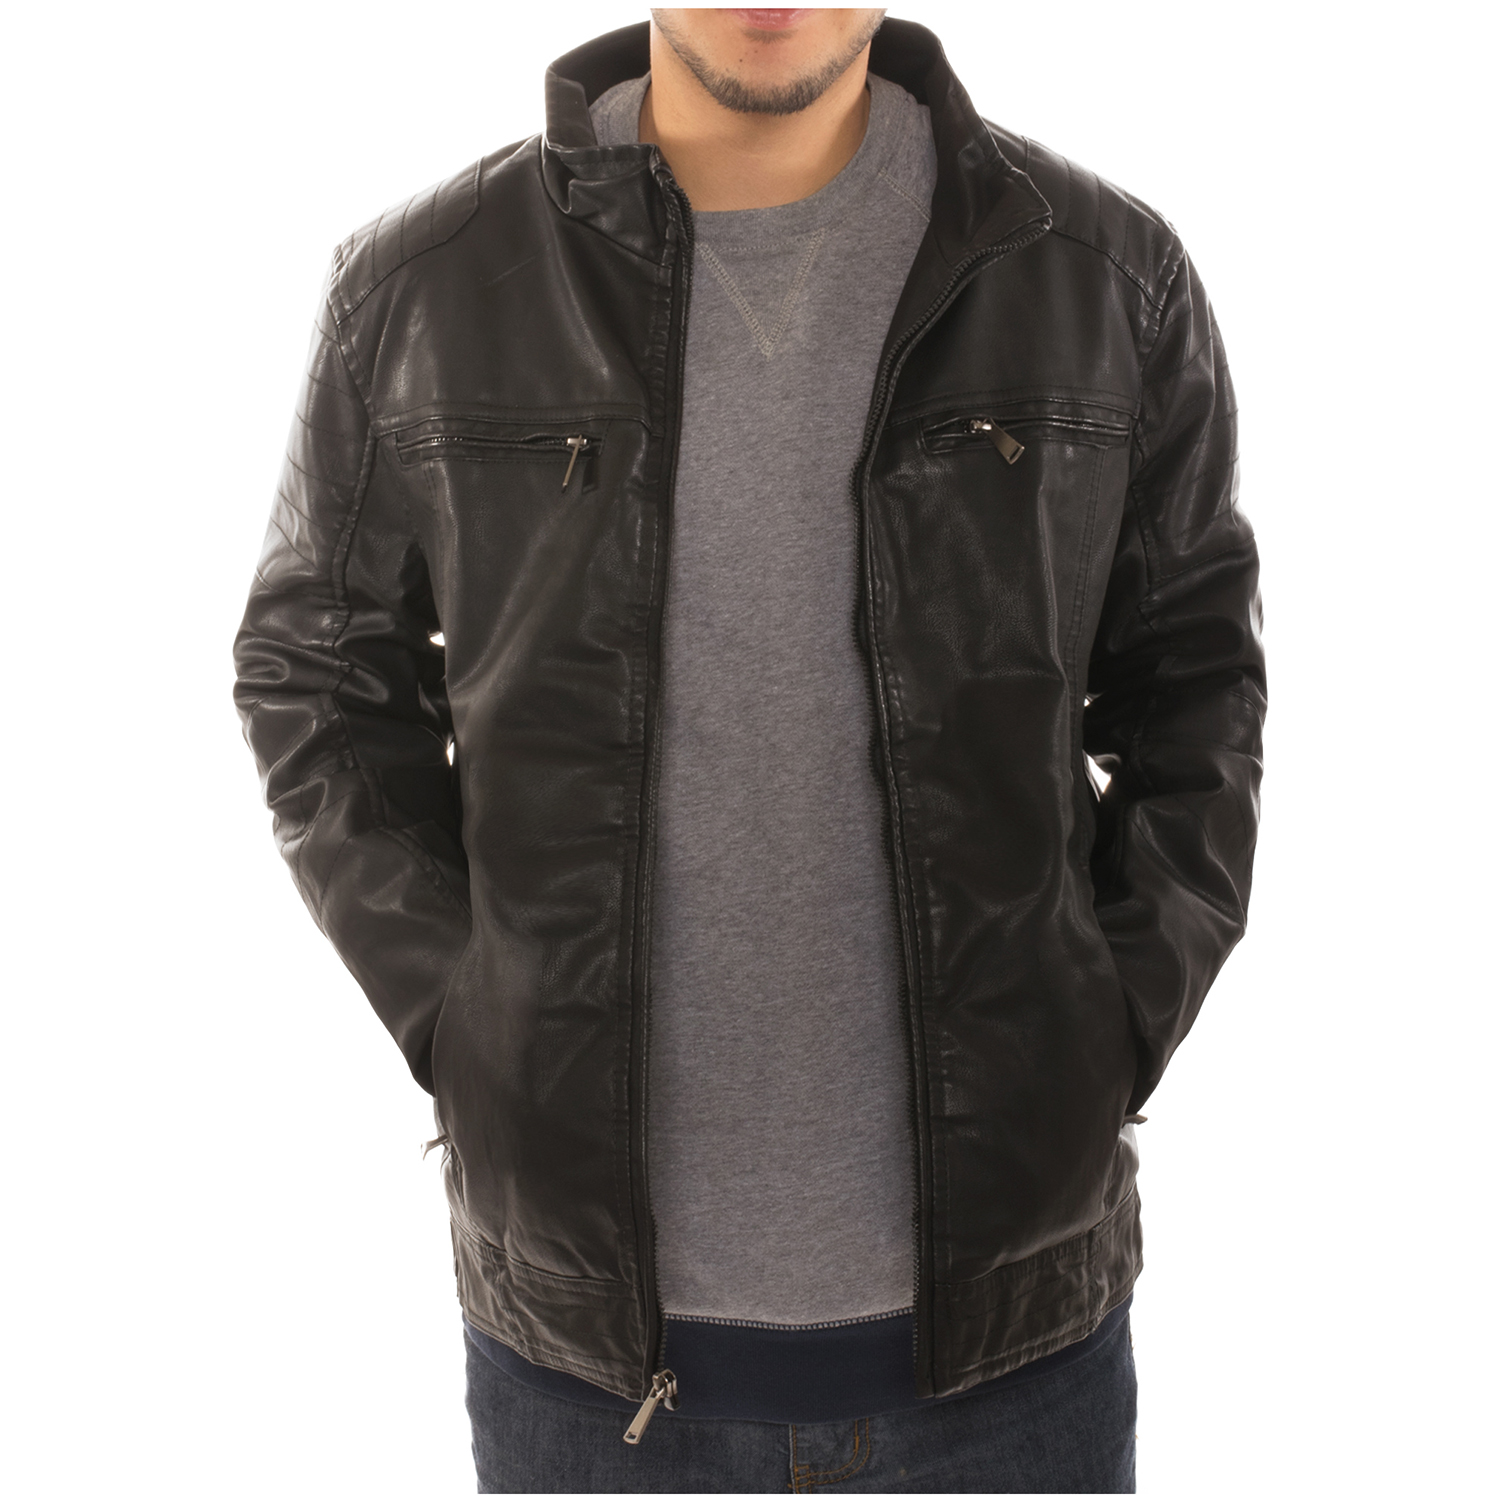 Fleece lined leather jacket